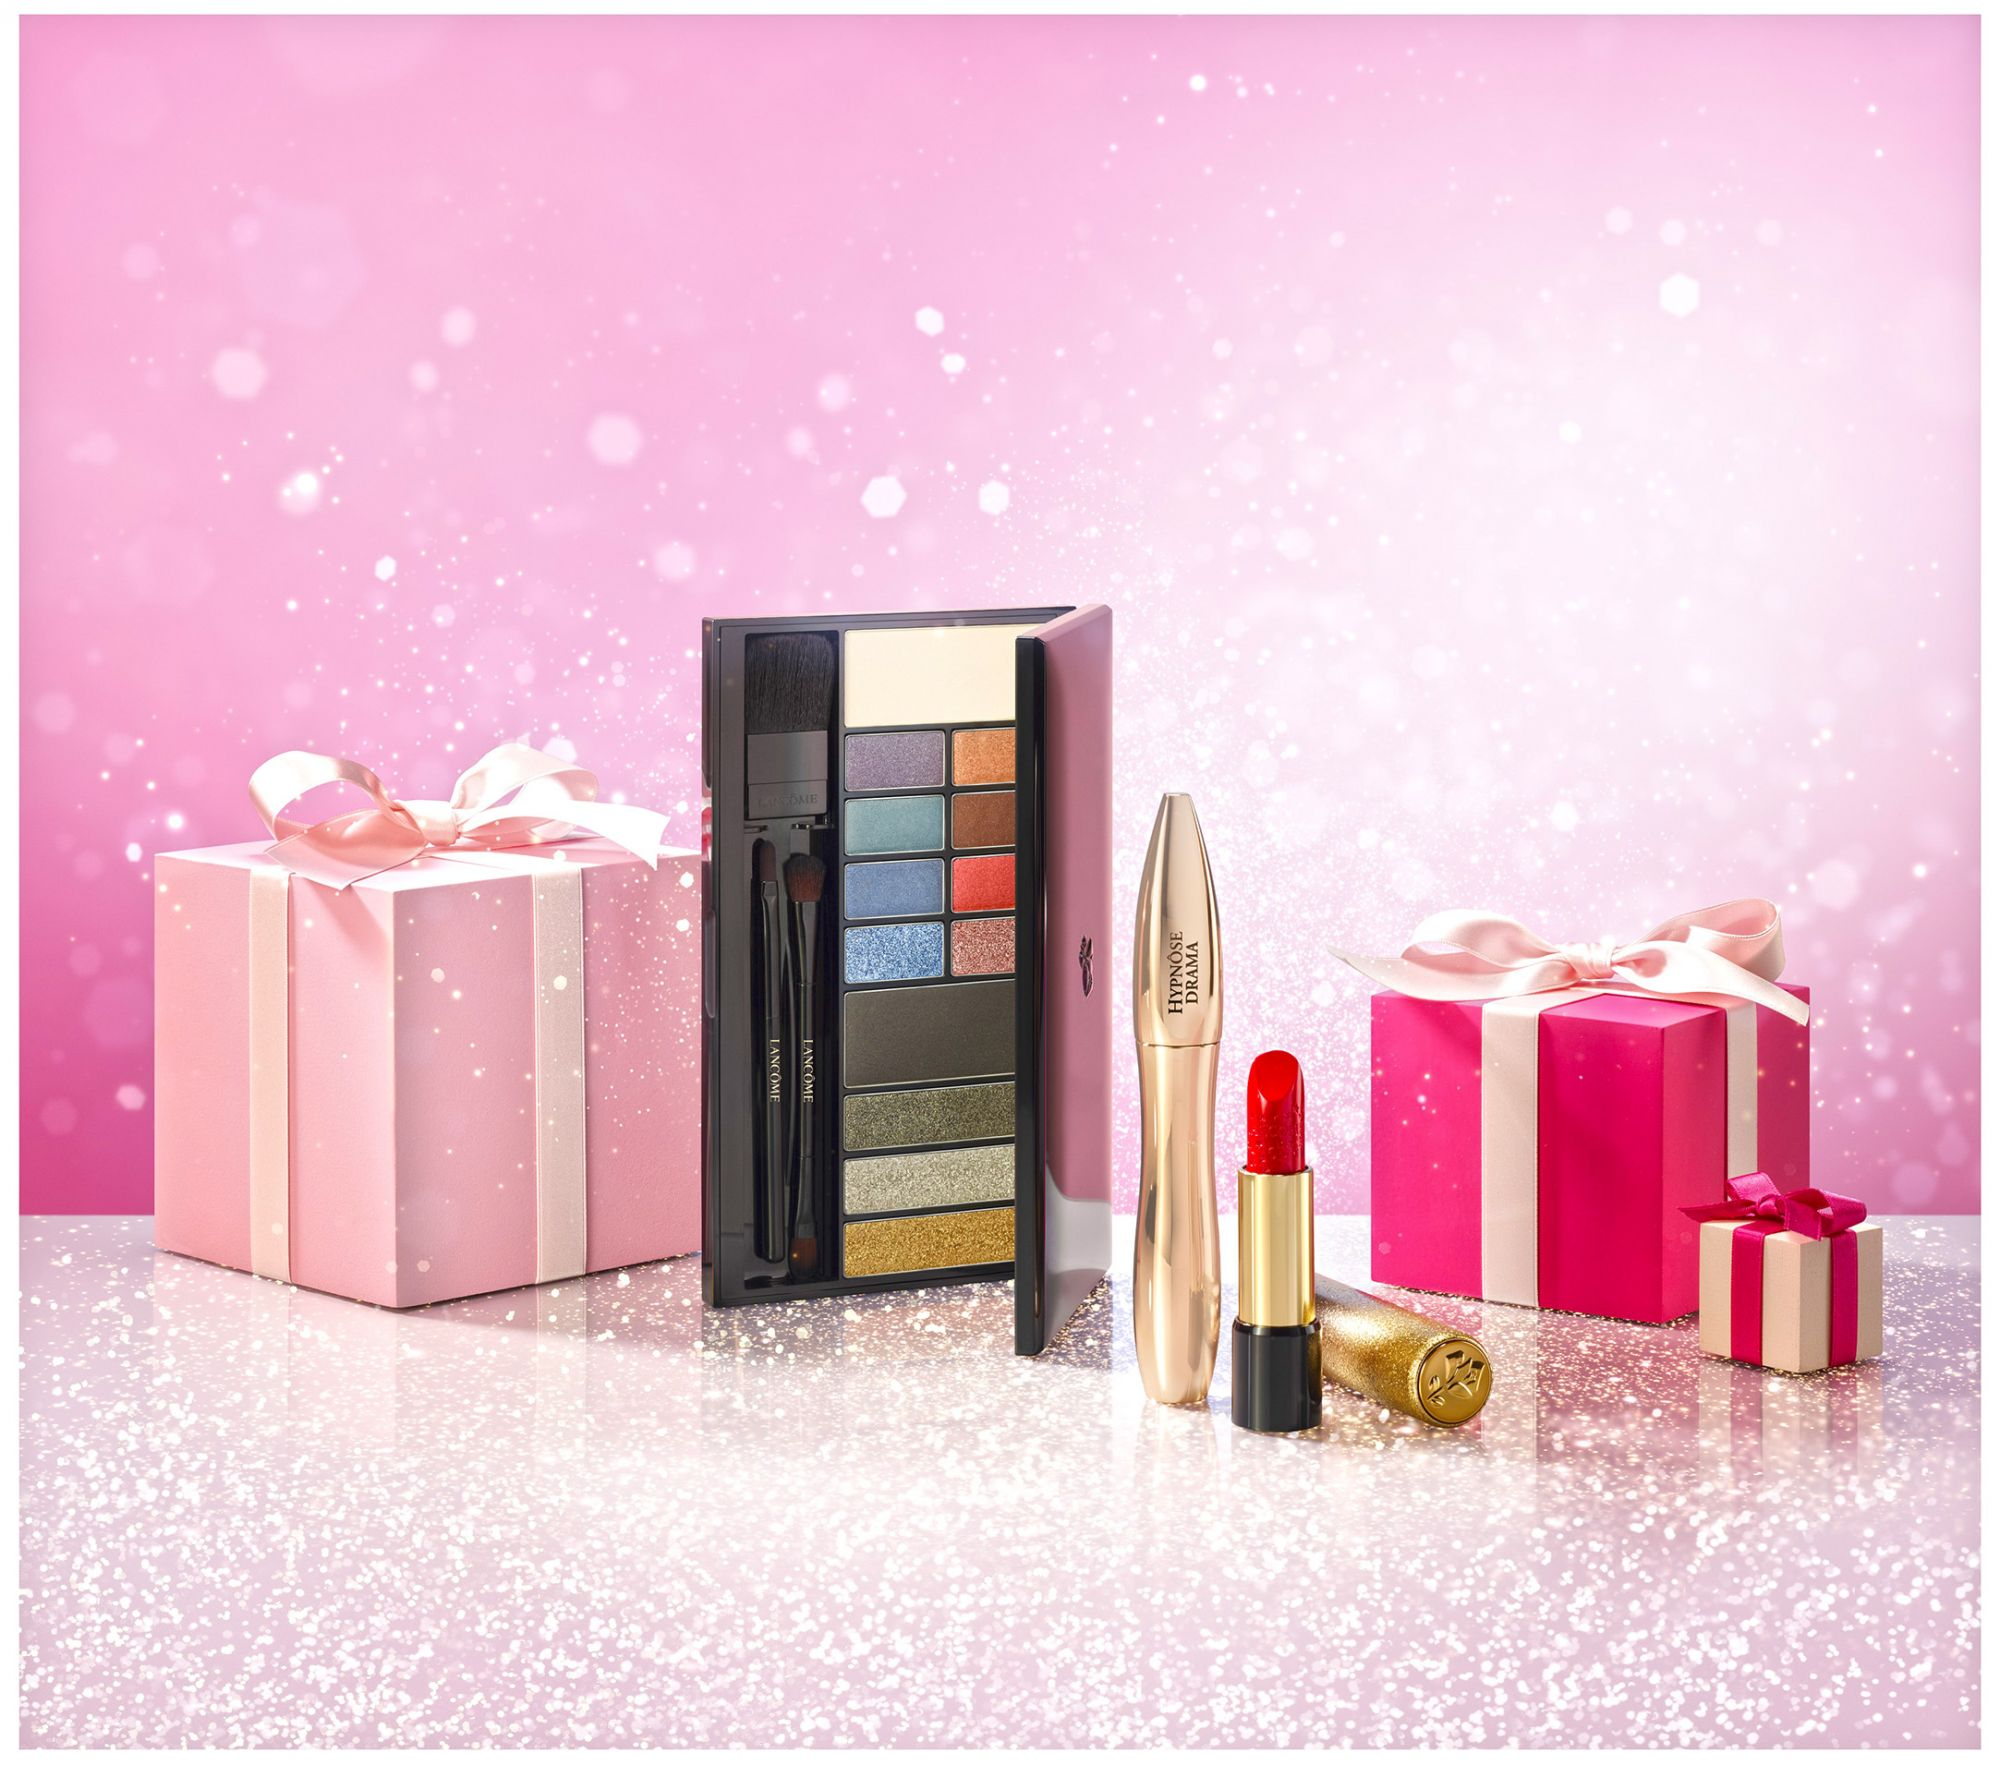 Lancôme's Holiday Makeup Collection Puts You In The Spotlight